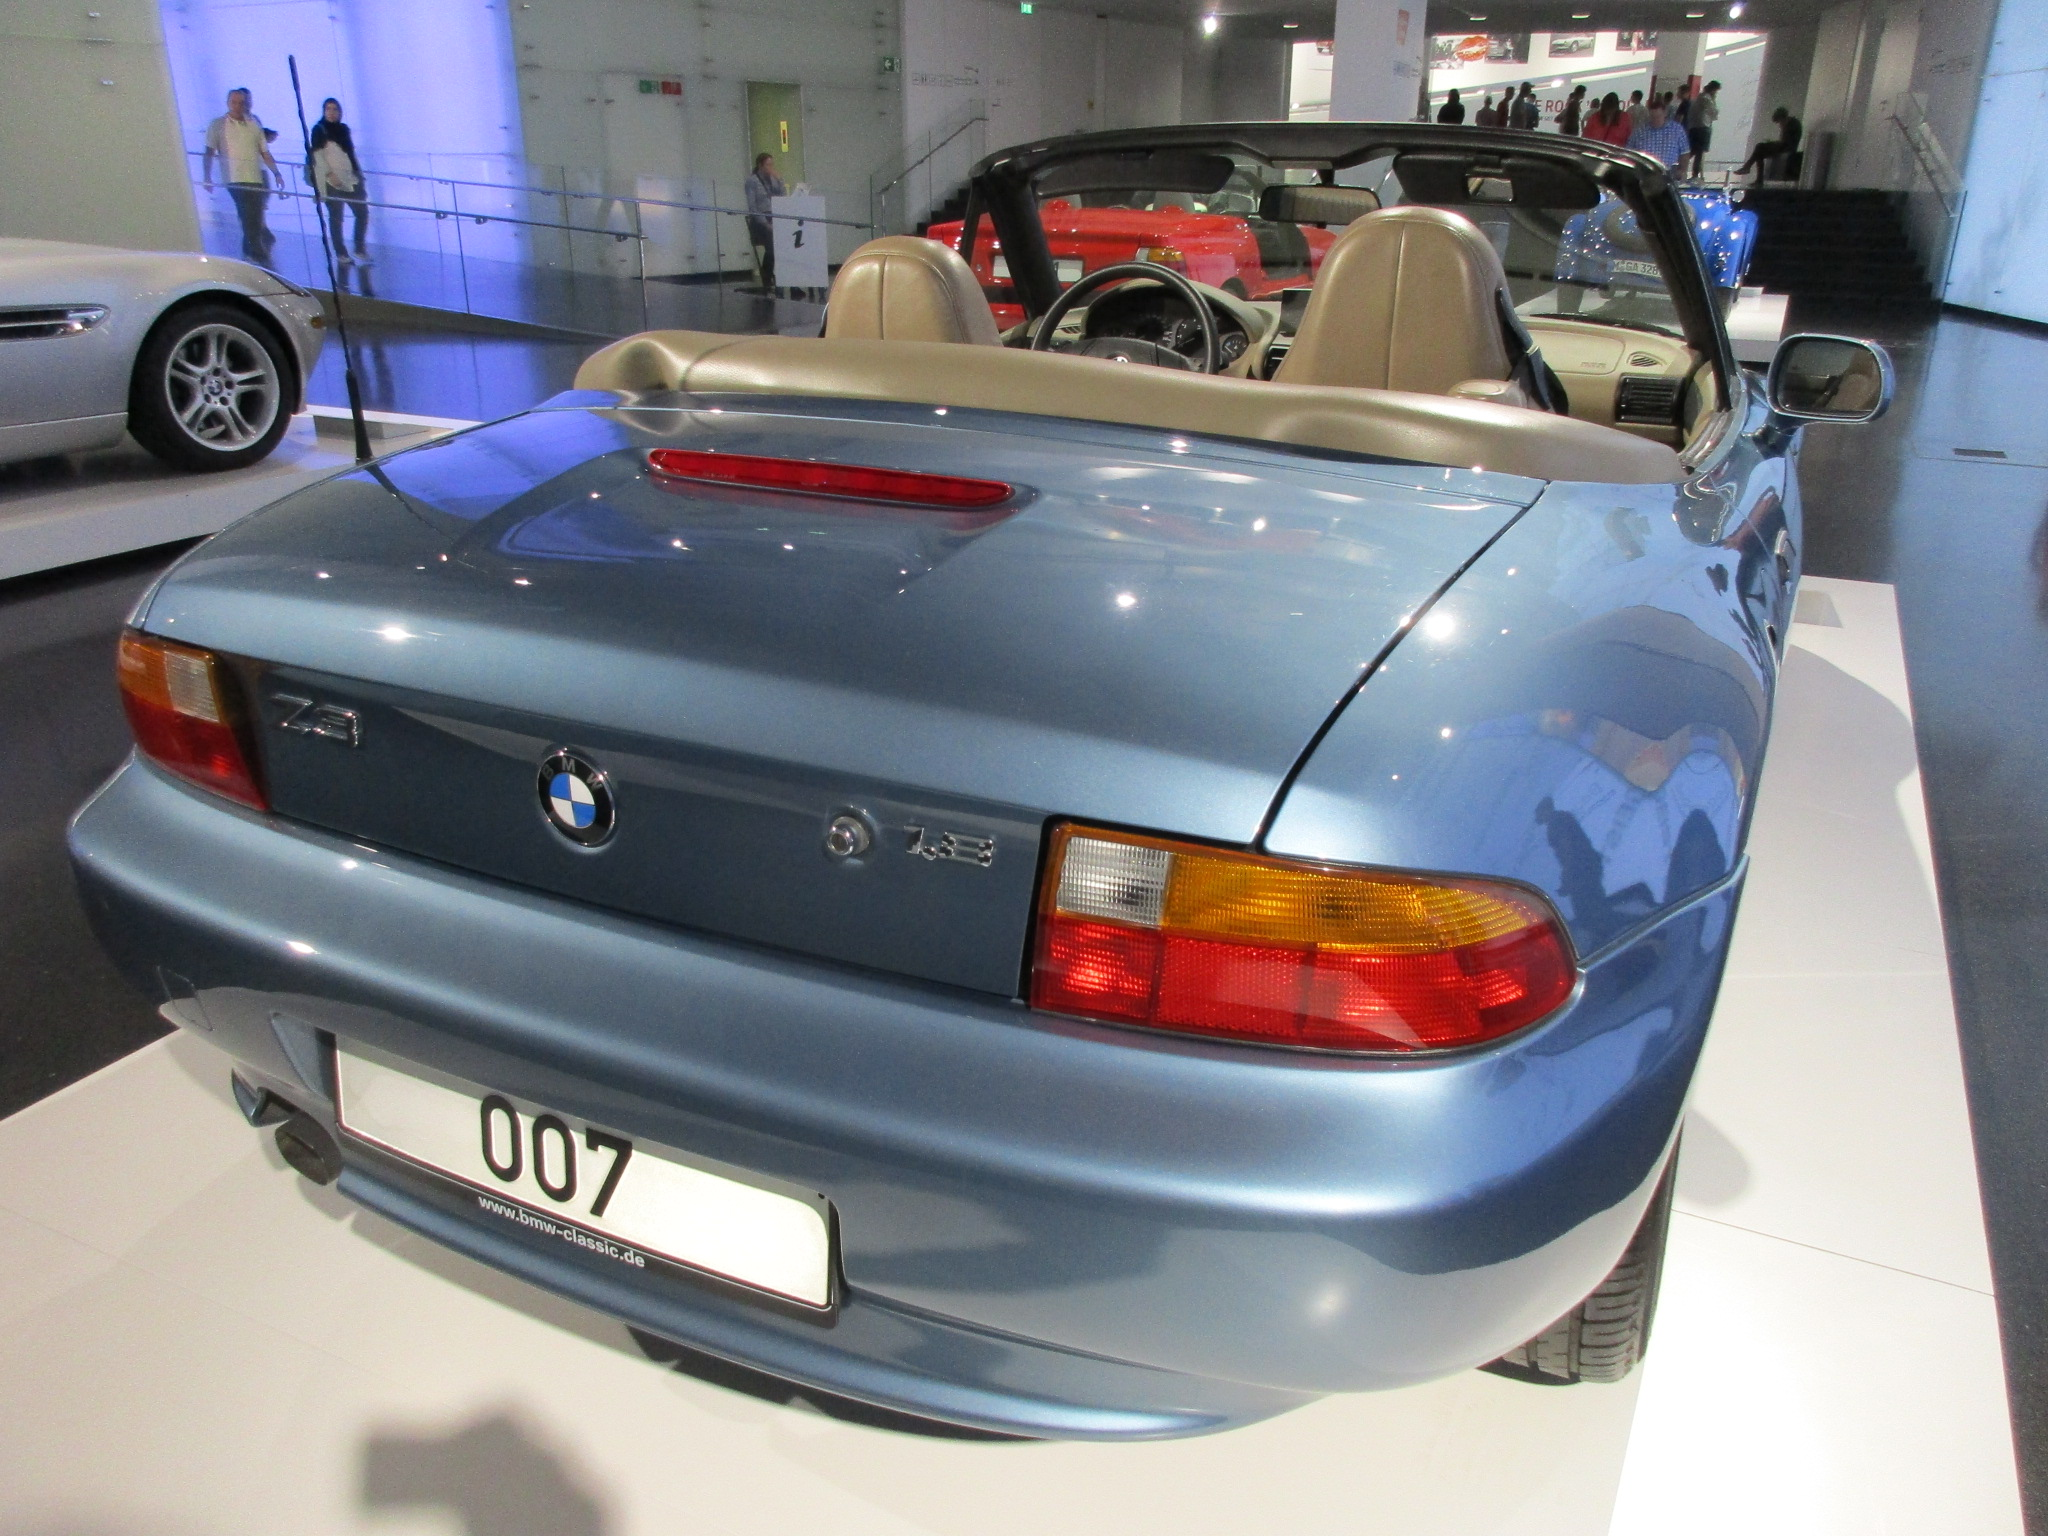 File Bmw Z3 007 002 Jpg Wikimedia Commons